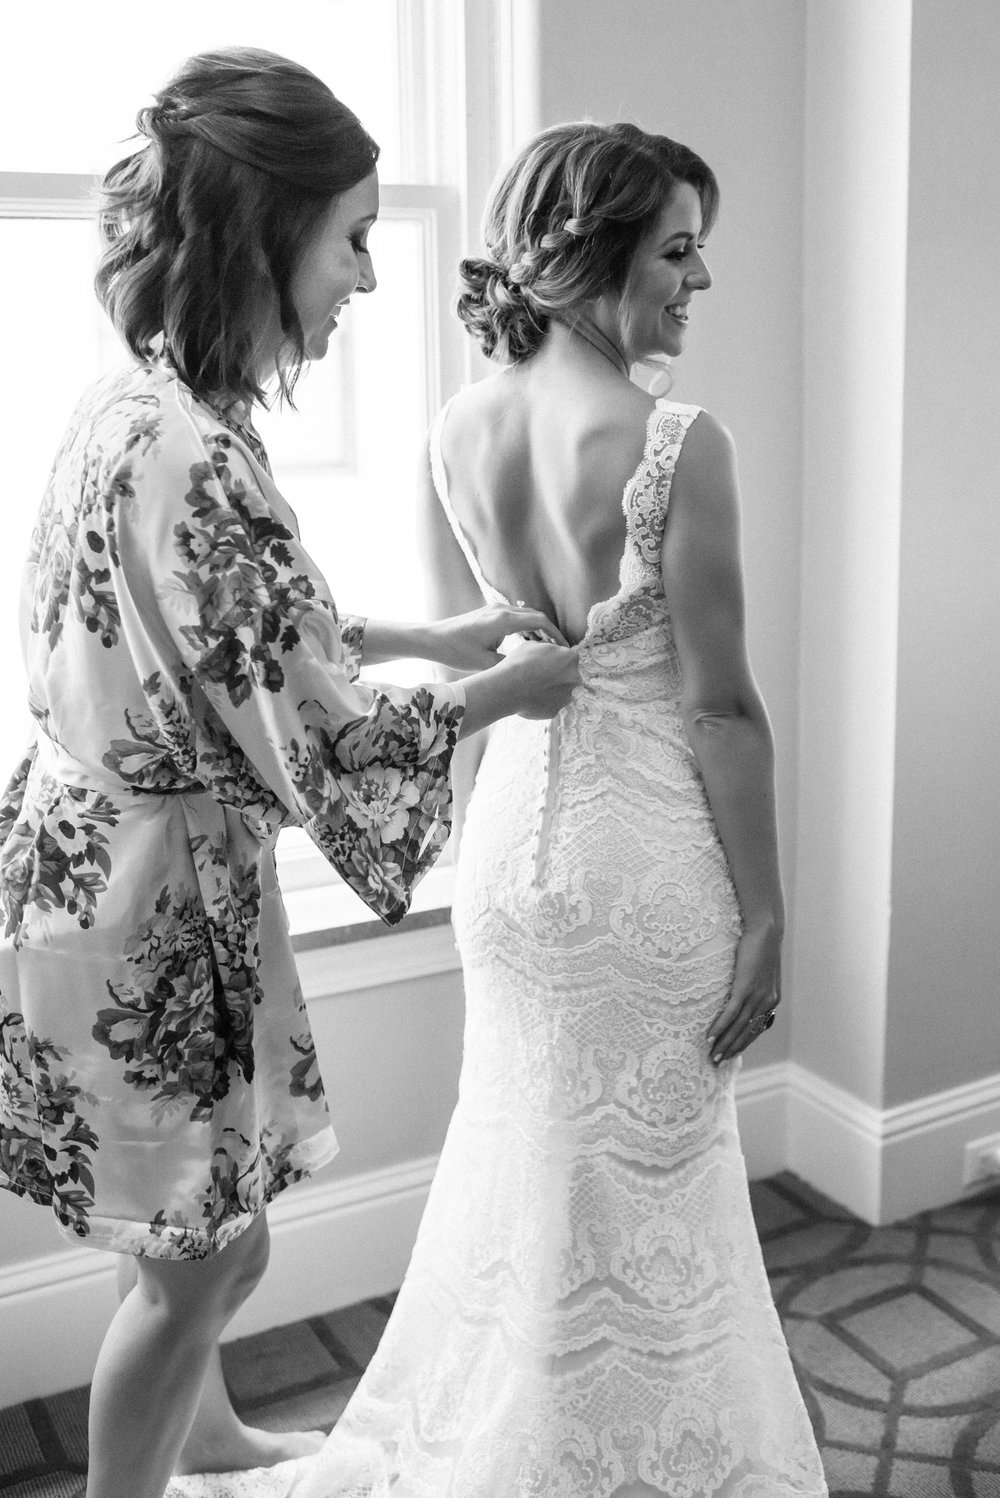 Bride getting into her dress at Colorado mountain wedding photographer